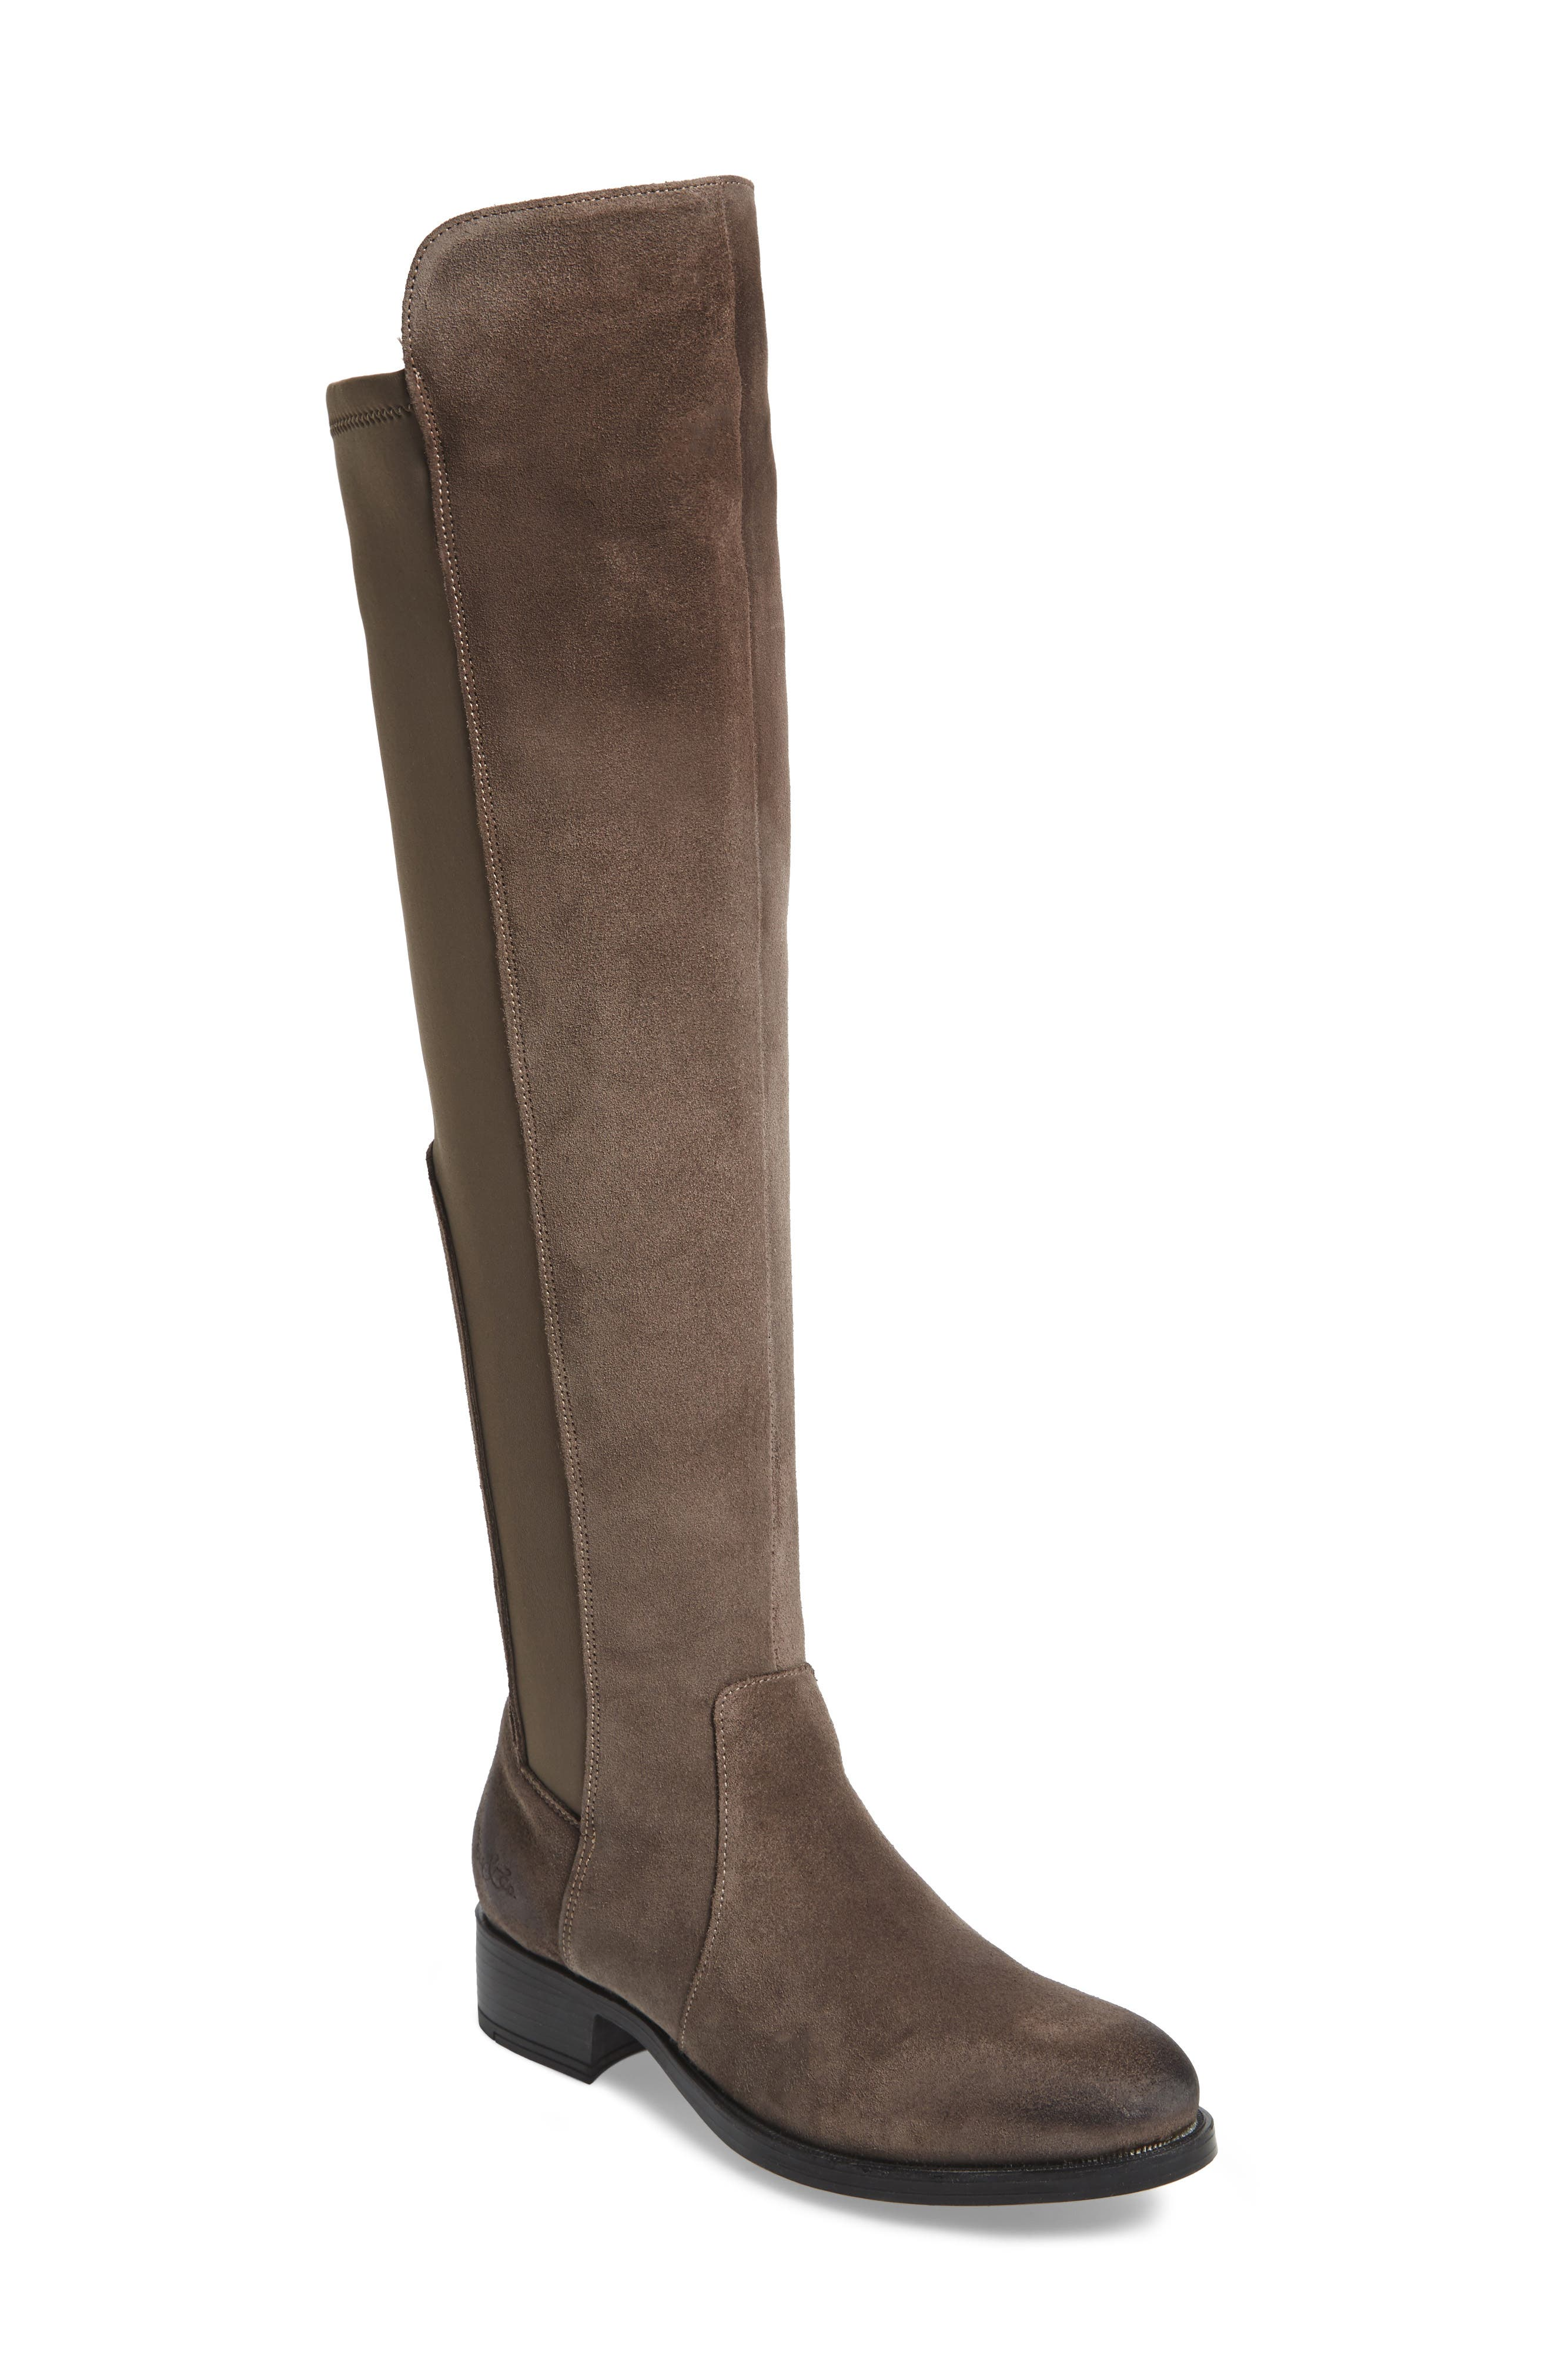 Bunt Waterproof Over the Knee Boot,                         Main,                         color, Elephant Suede Leather